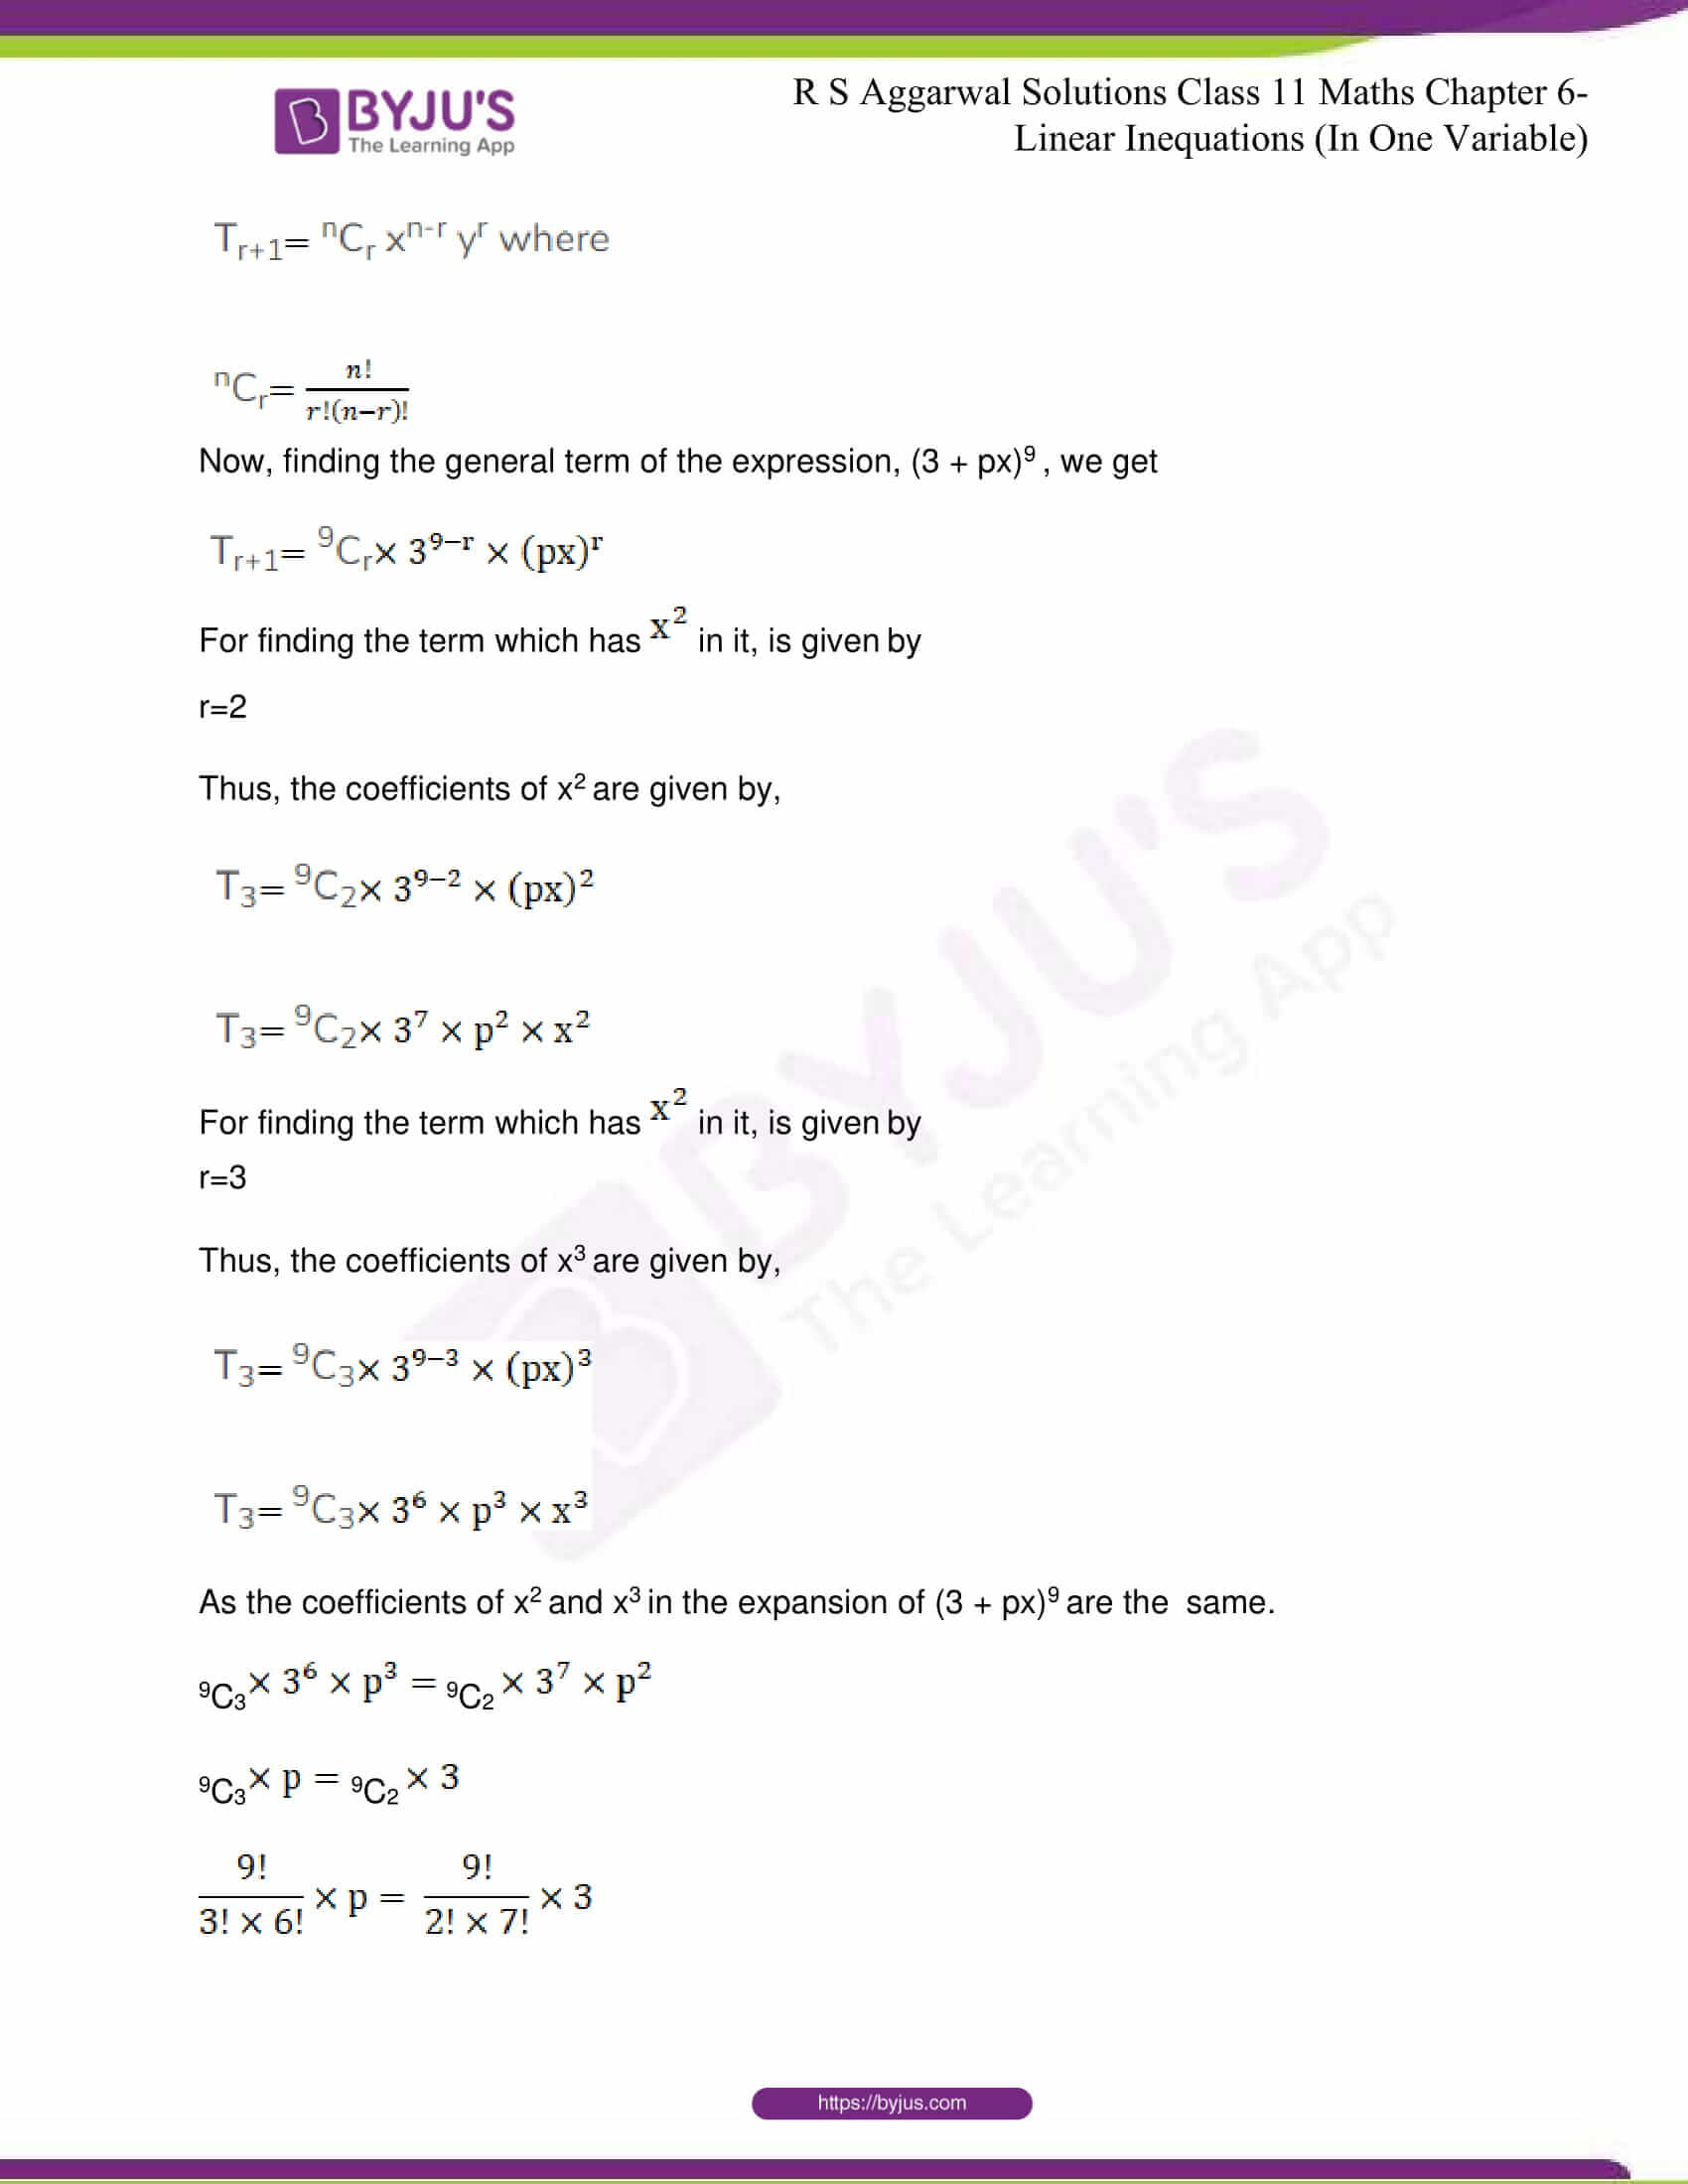 RS Aggarwal Sol Class 11 Maths Chapter 10